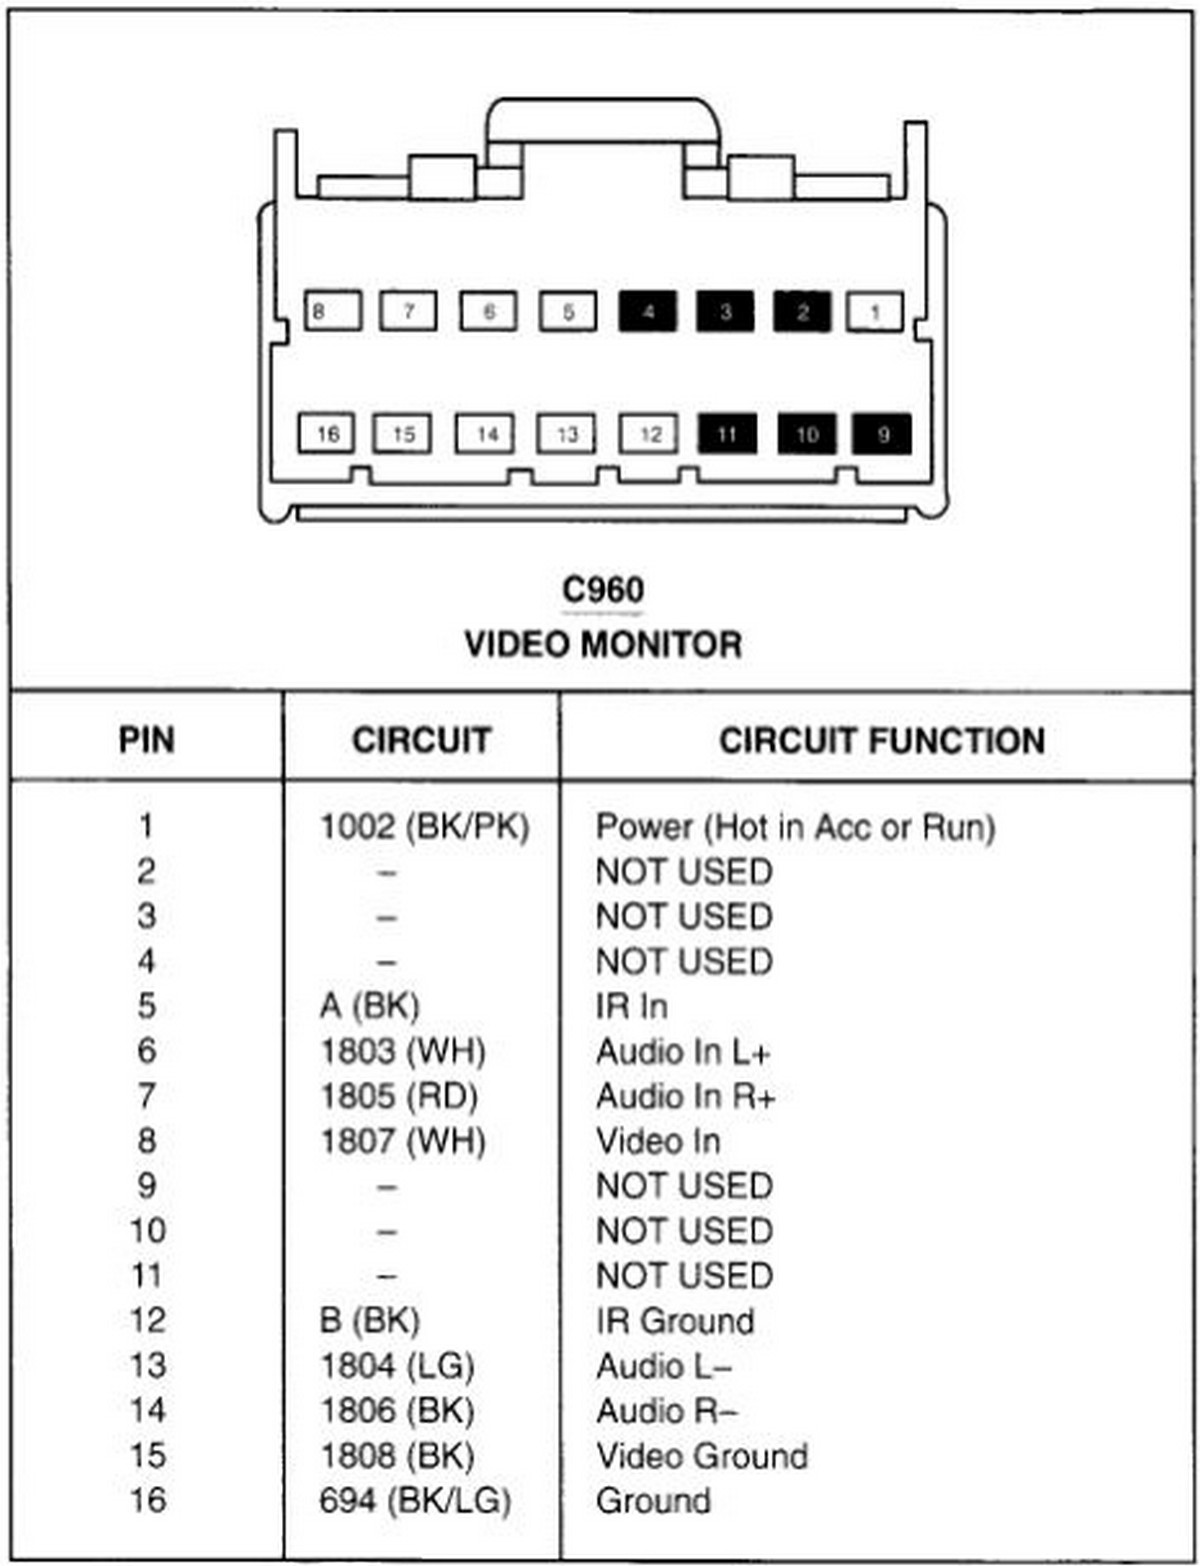 Ford Car Radio Stereo Audio Wiring Diagram Autoradio Connector Wire 1998 Chevy Blazer Installation Schematic Schema Esquema De Conexiones Stecker Konektor Connecteur Cable